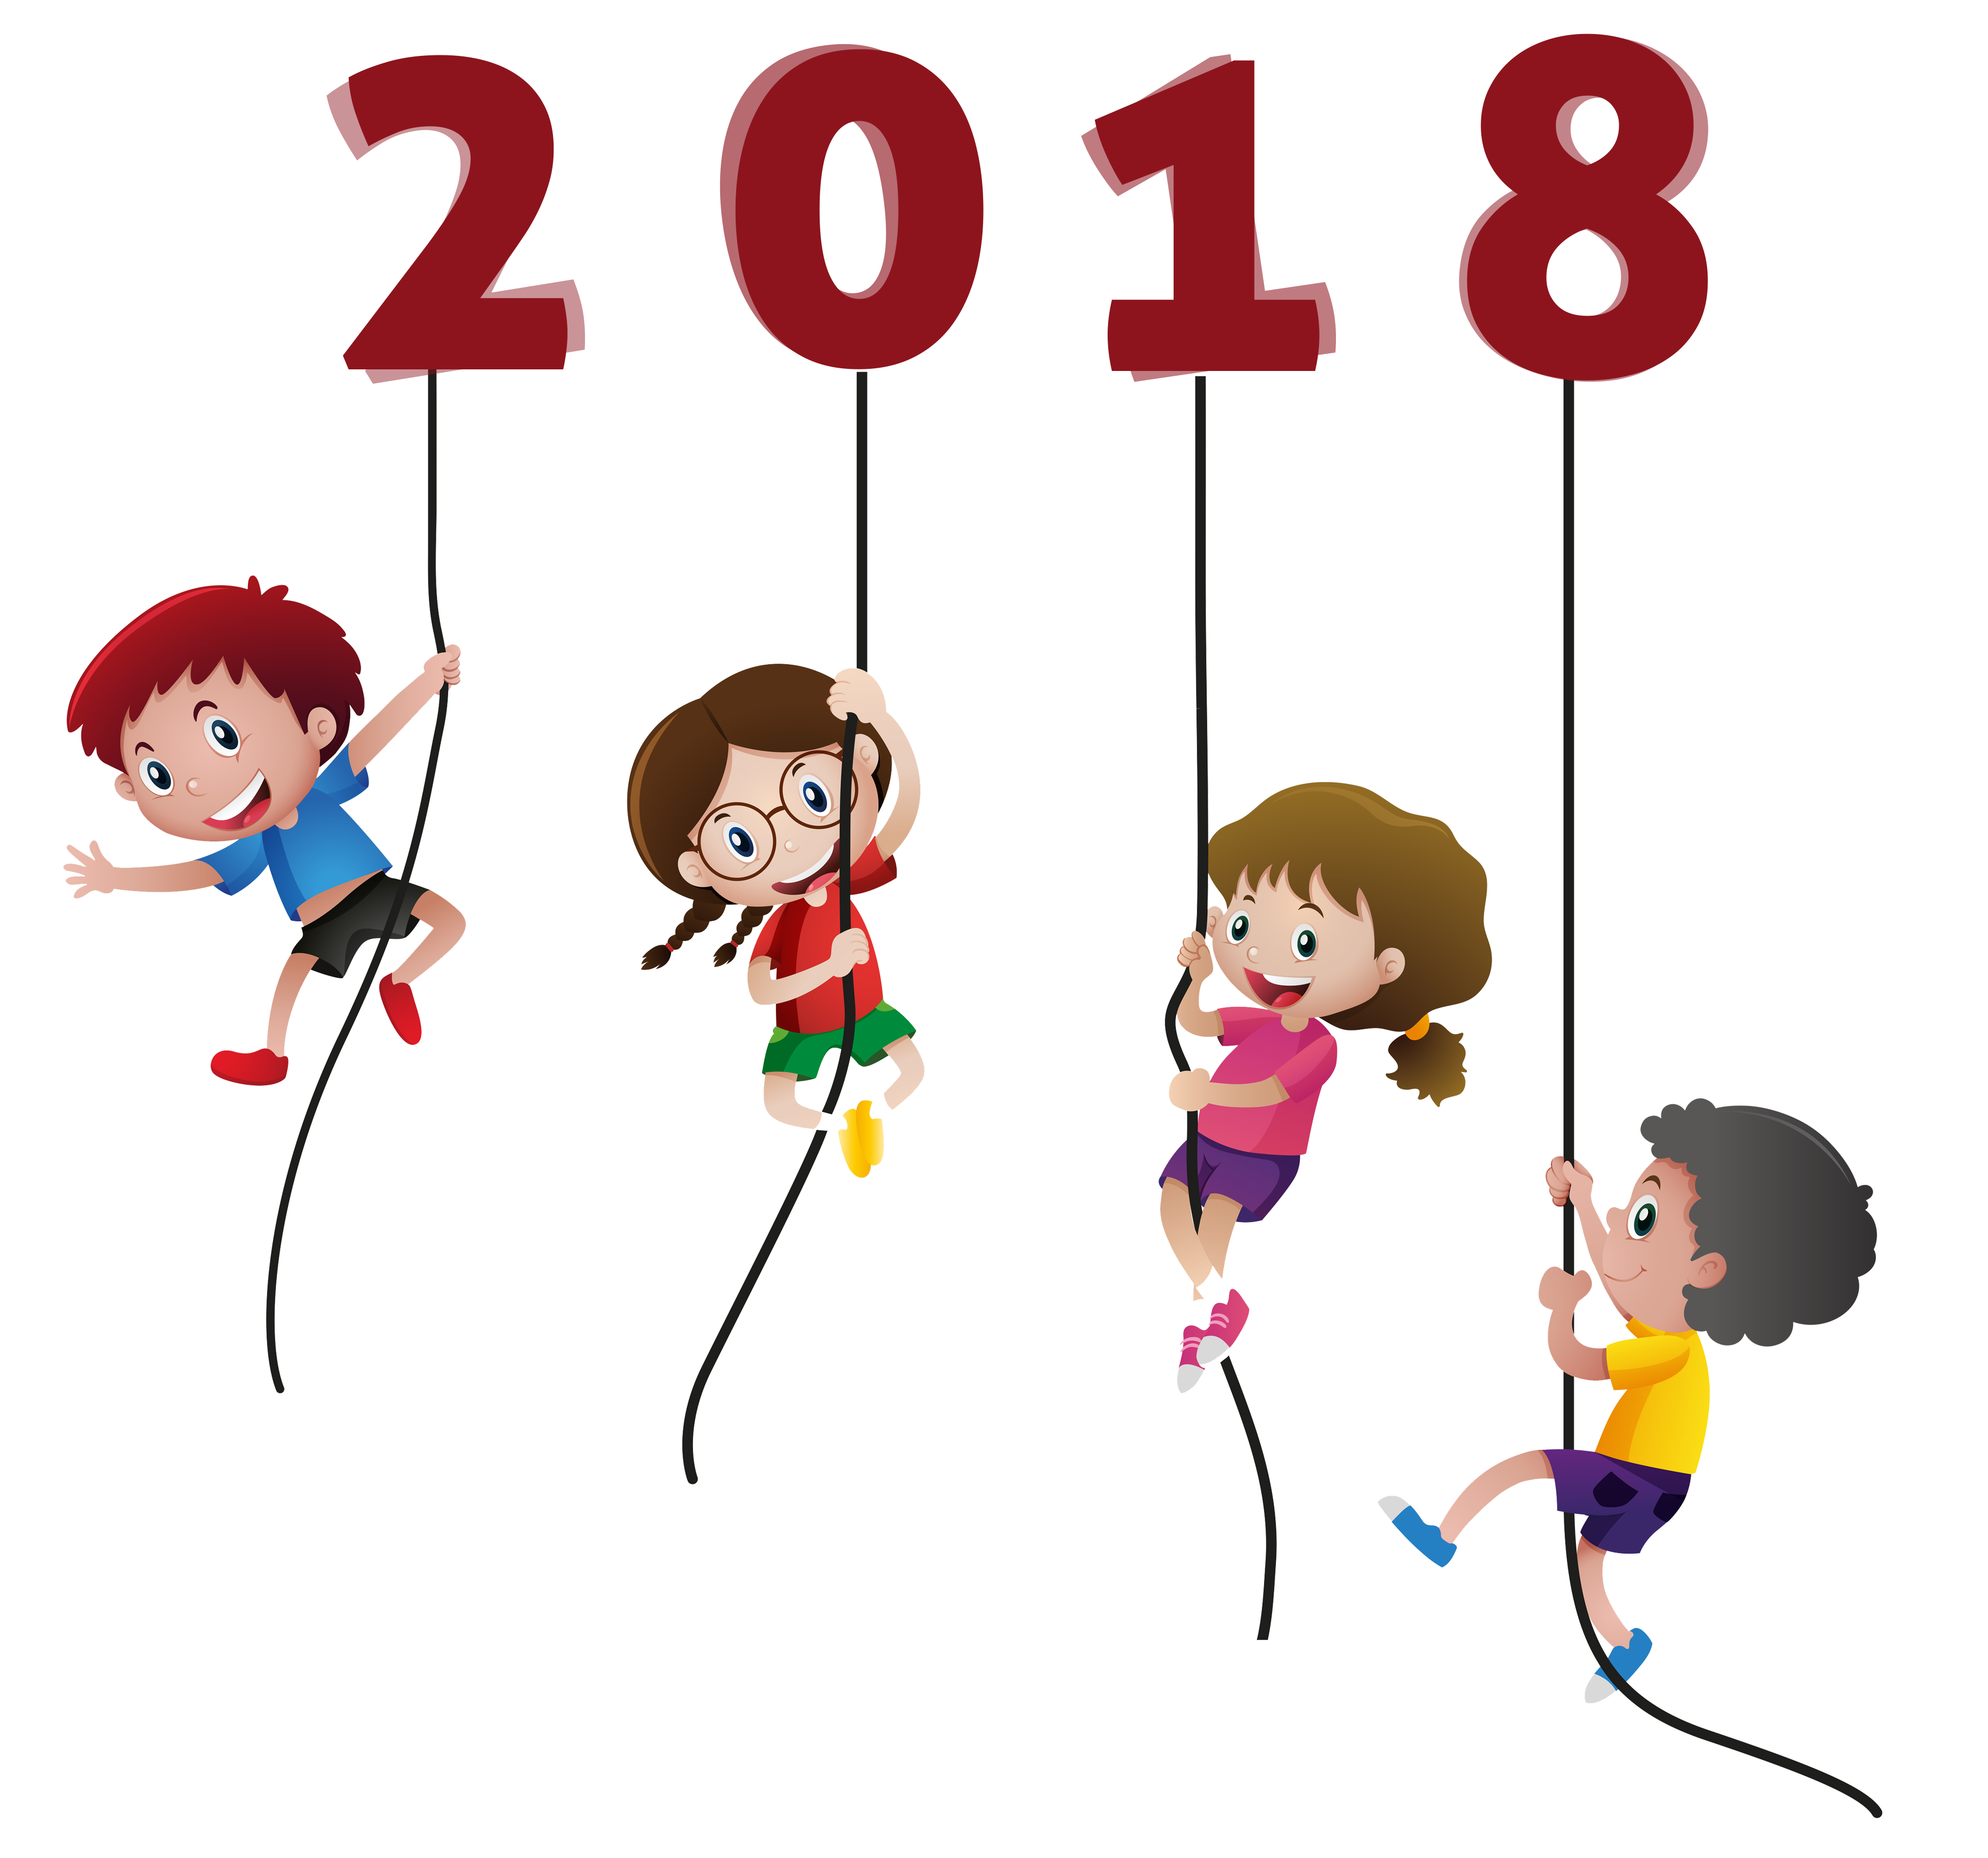 Happy New Year 2018 Kids Funny Without B-Happy New Year 2018 Kids Funny without background-10